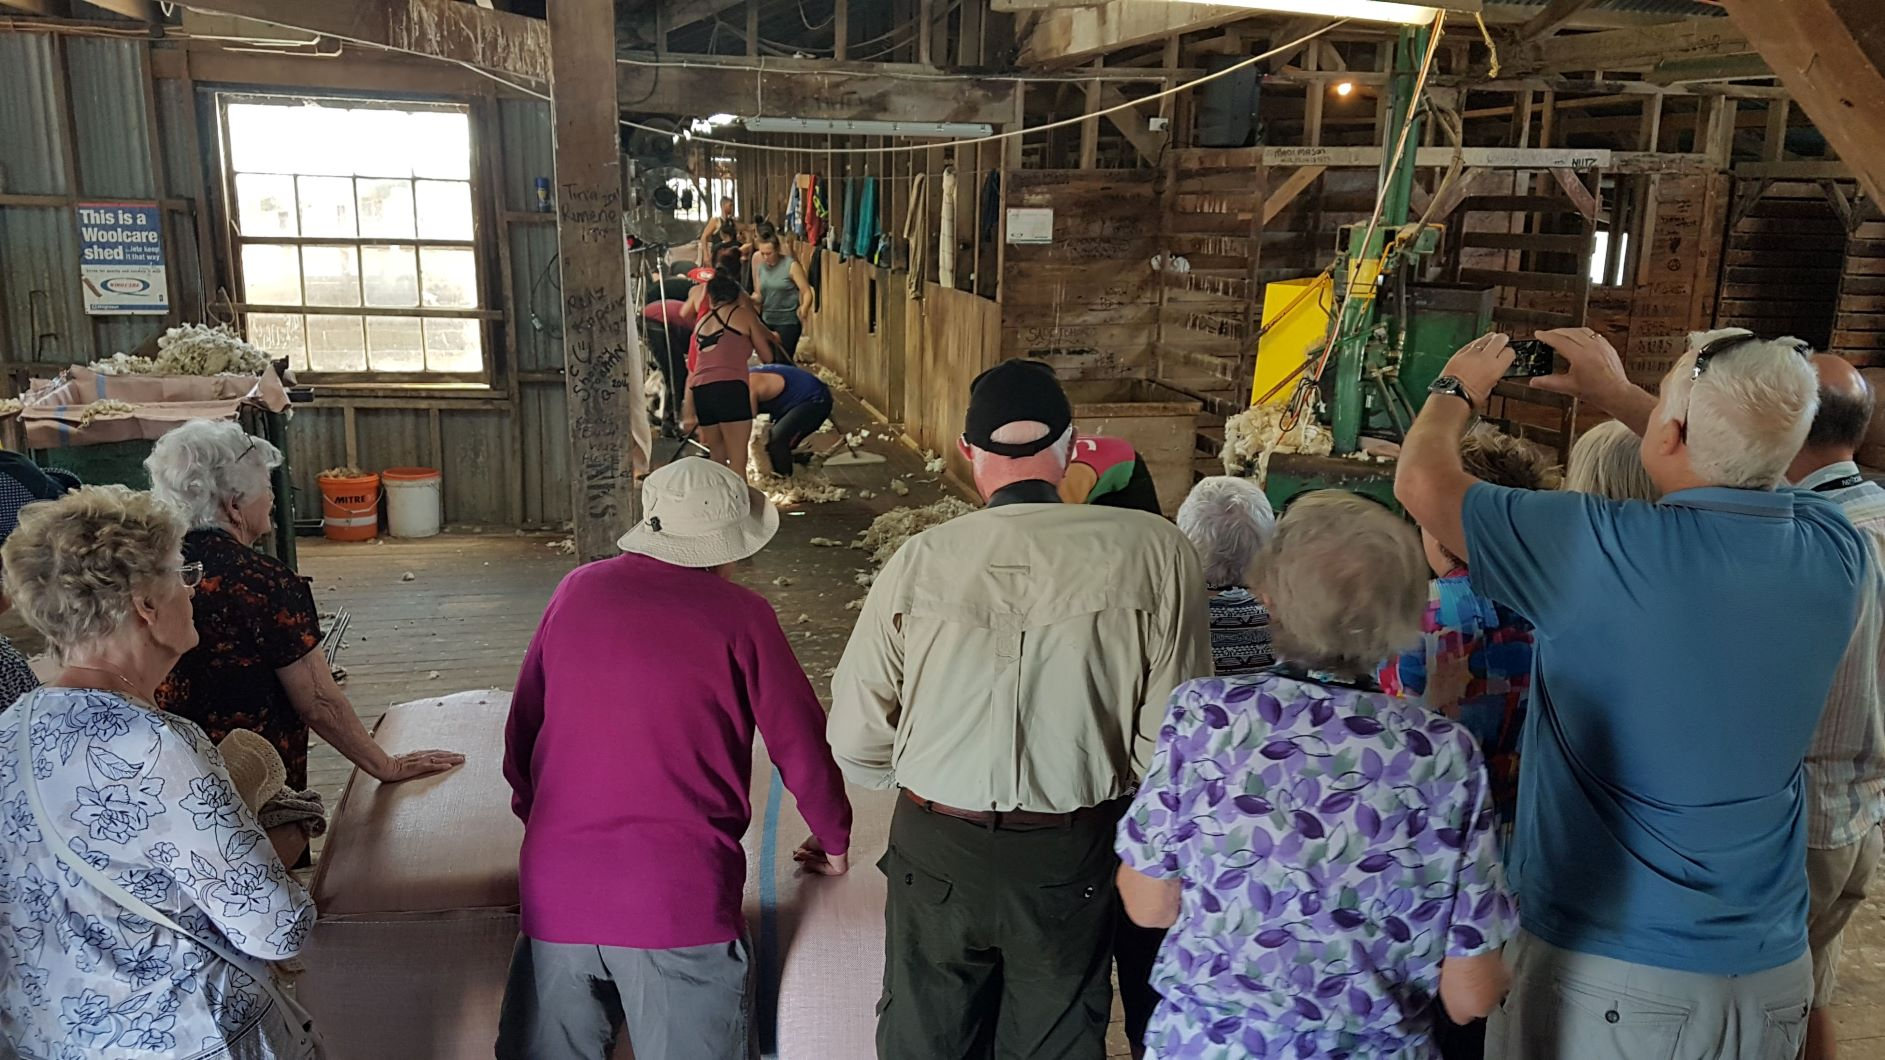 Lagoon Hill Station woolshed shearing